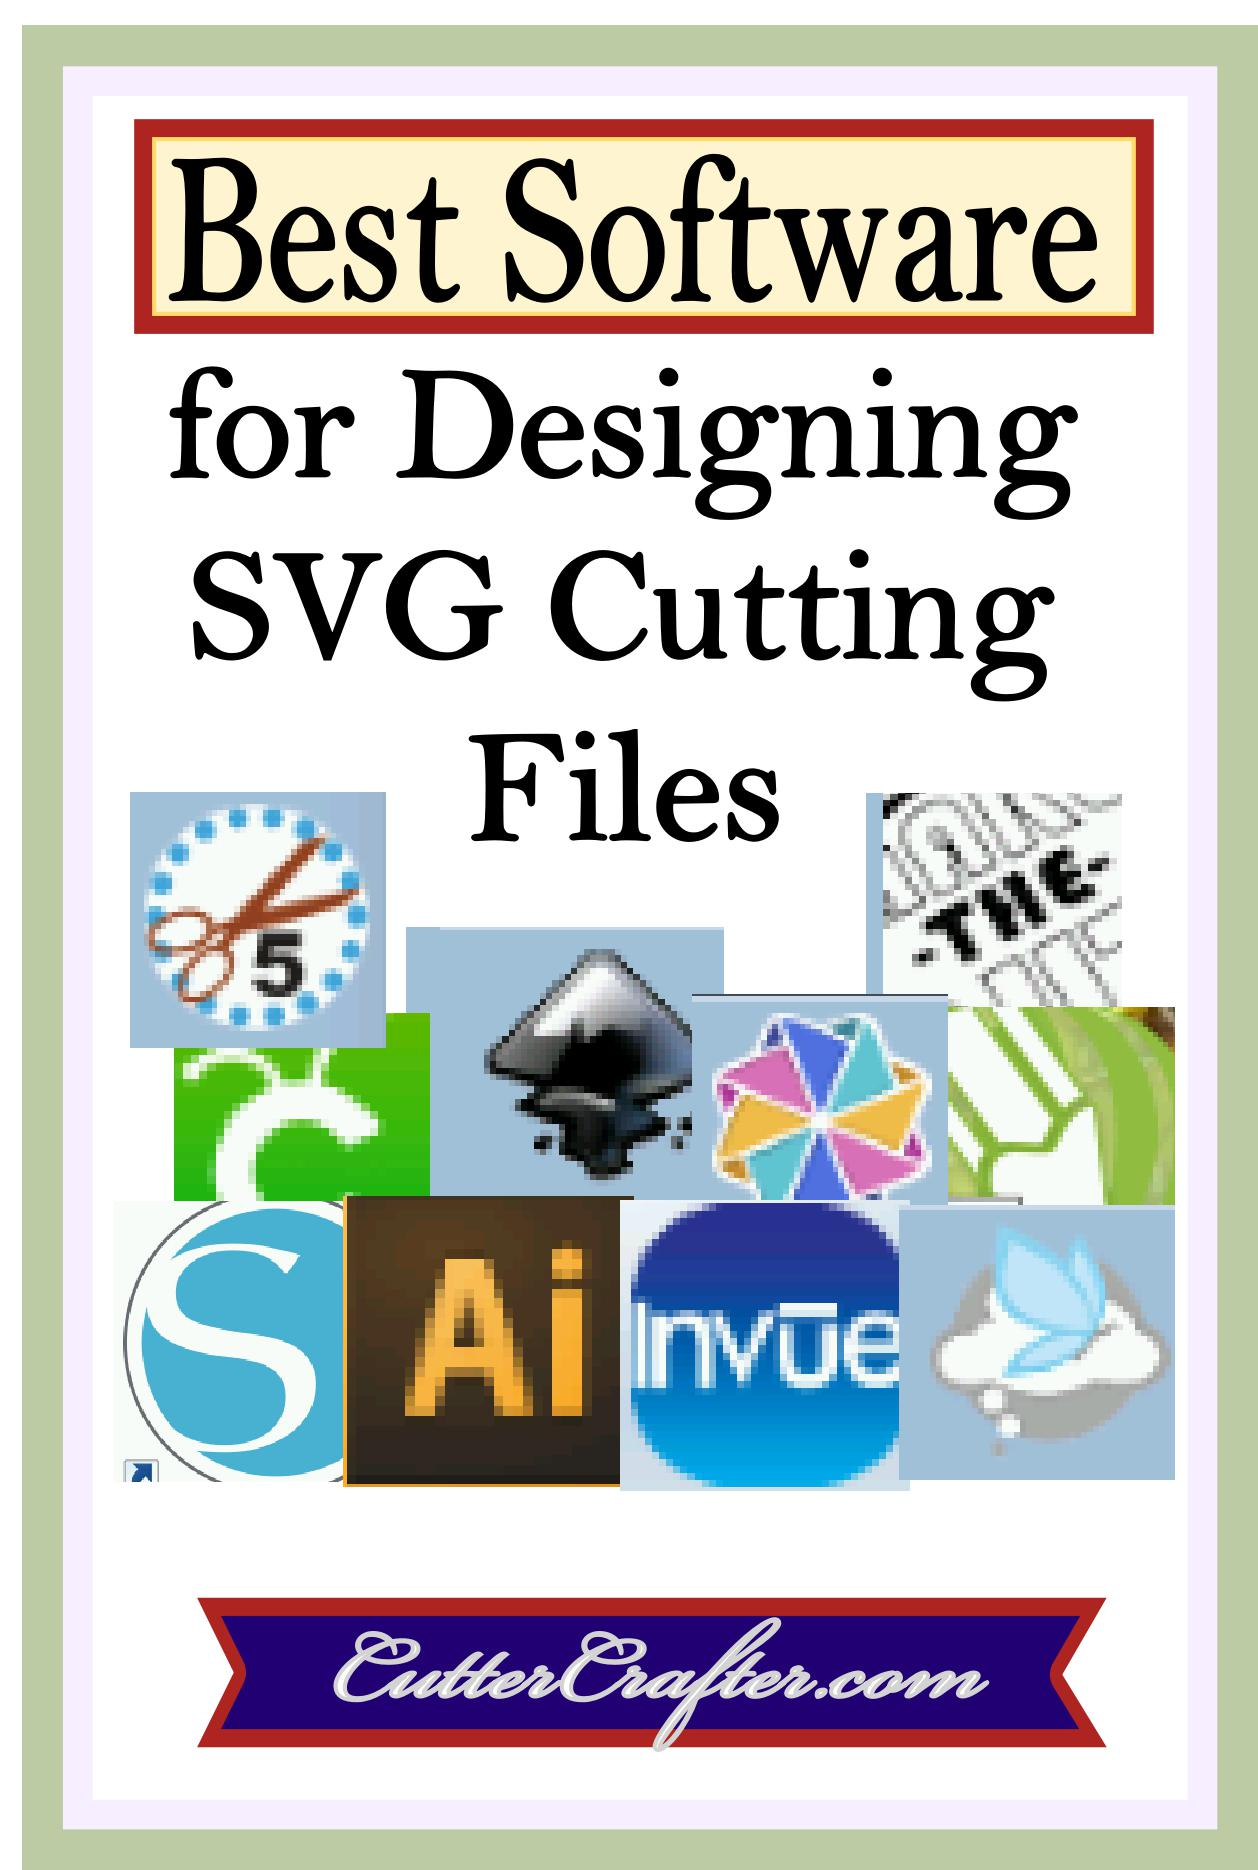 Design Software for Creating SVG Files | Cricut-ScanNCut